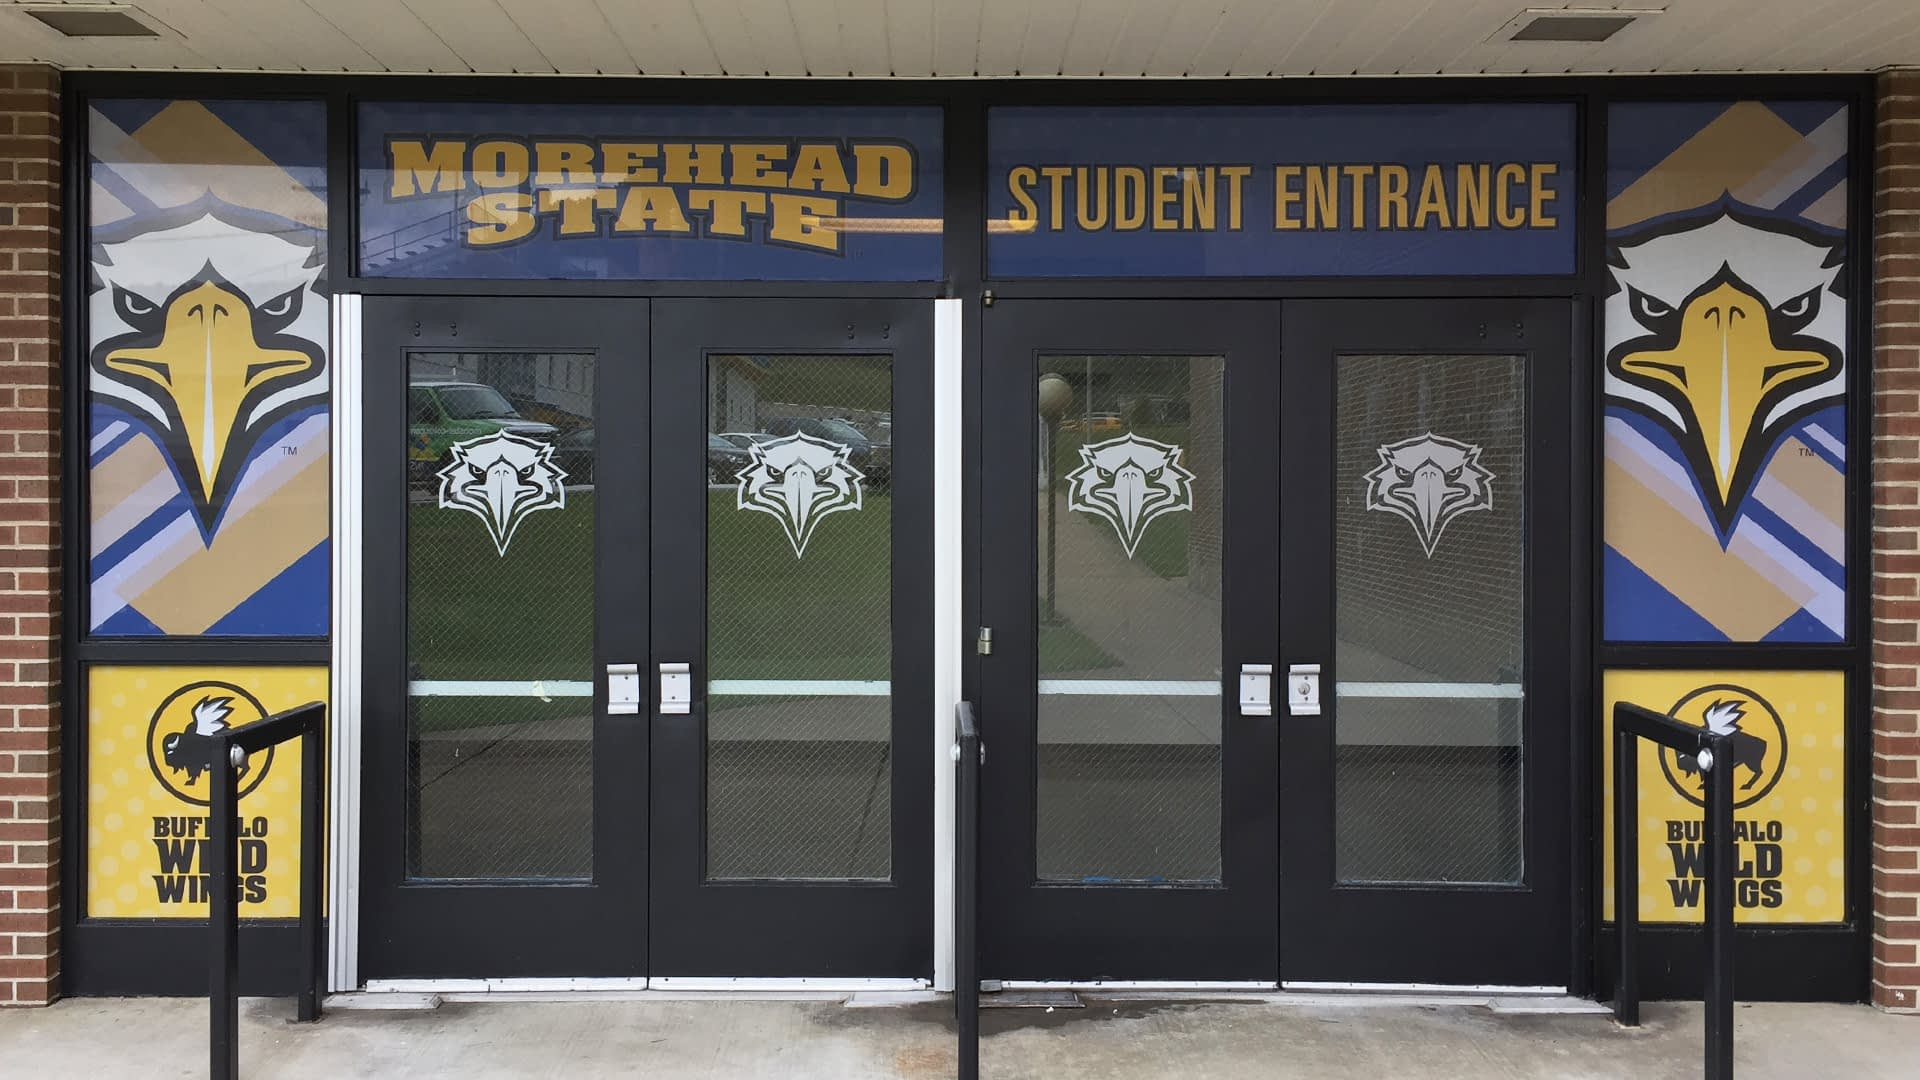 Morehead state student entrance design